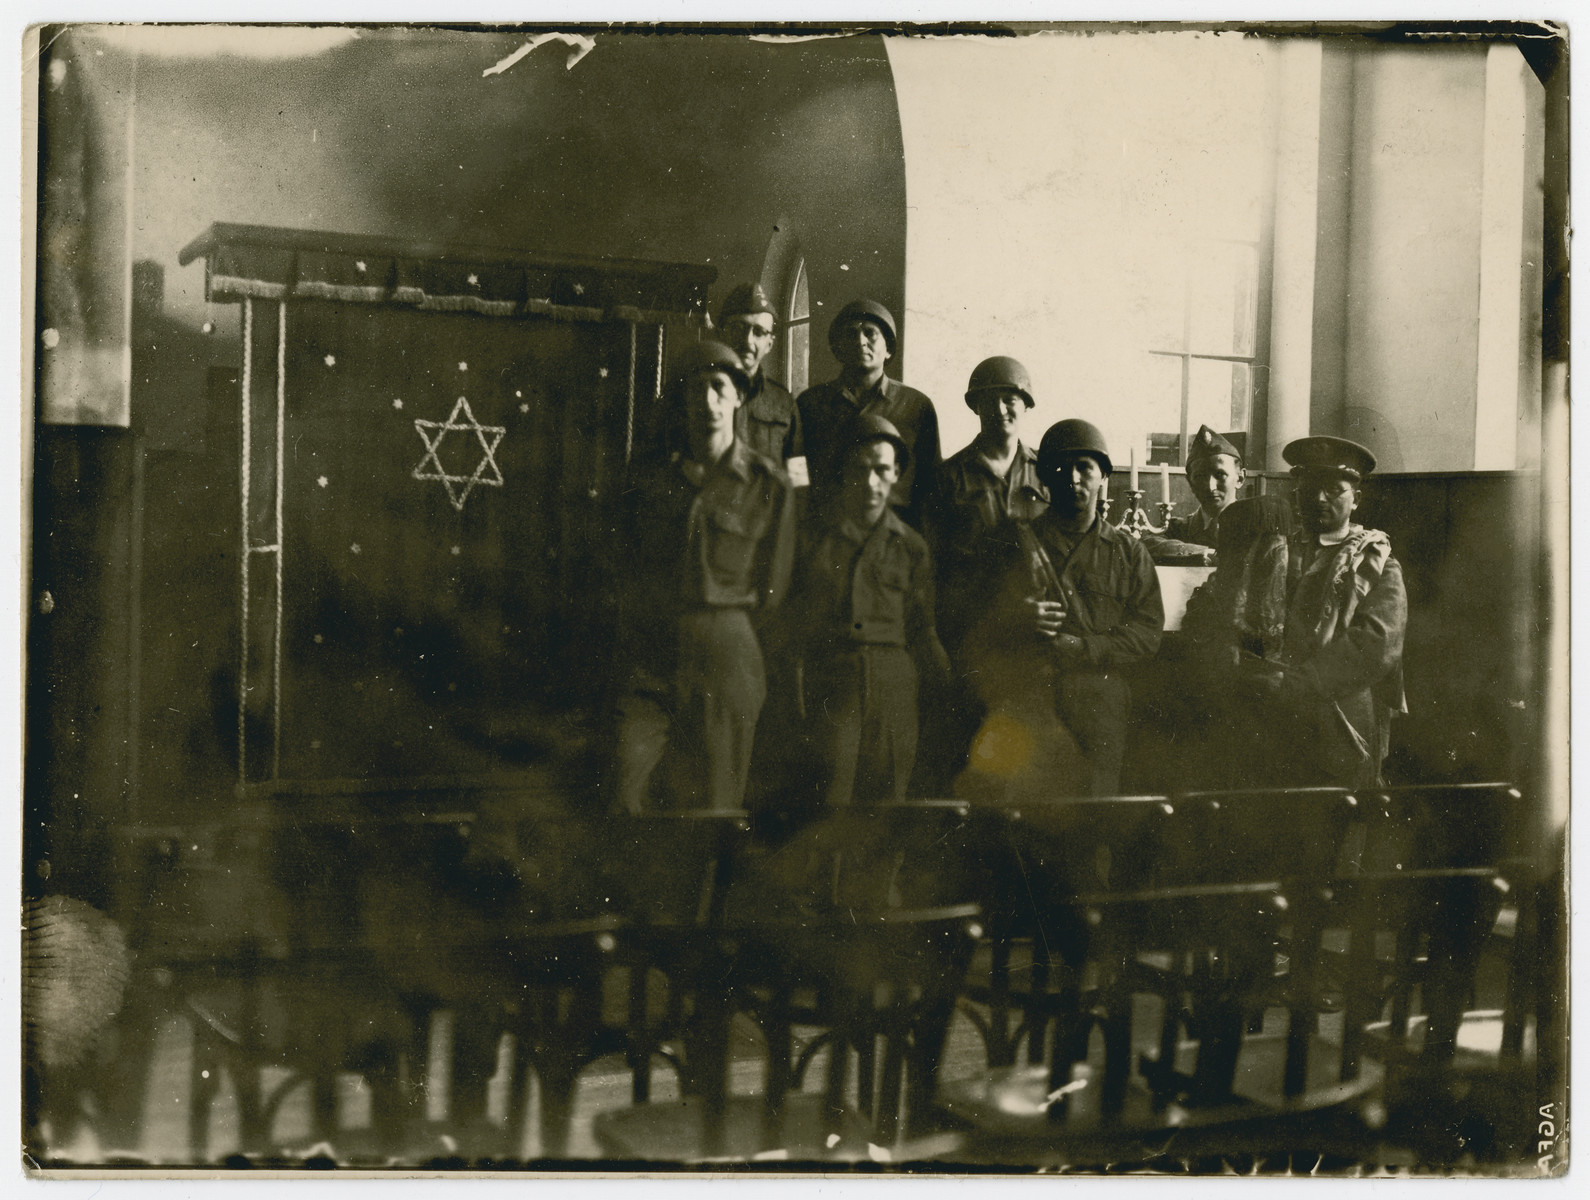 Leopold Guttman, Henry Kahn and other Jewish soldiers pose by the Toah ark in the newly restored synagogue in Wunsdorf after making townspeople repair it and the Jewish cemetery, both of which had been desecrated during the Holocaust.